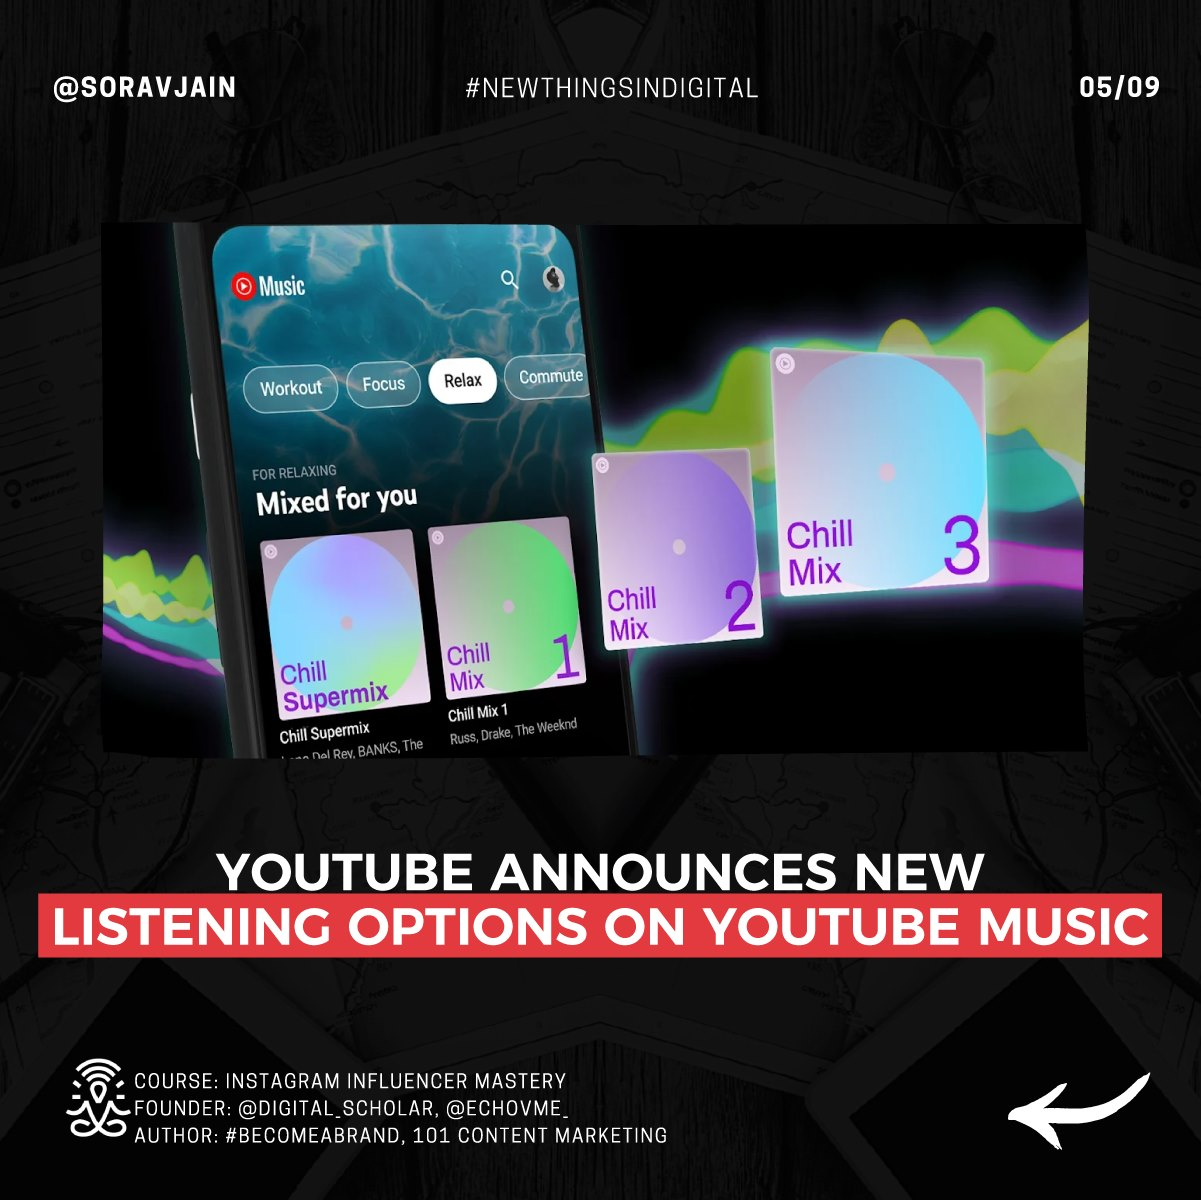 YouTube announces new listening options on YouTube music